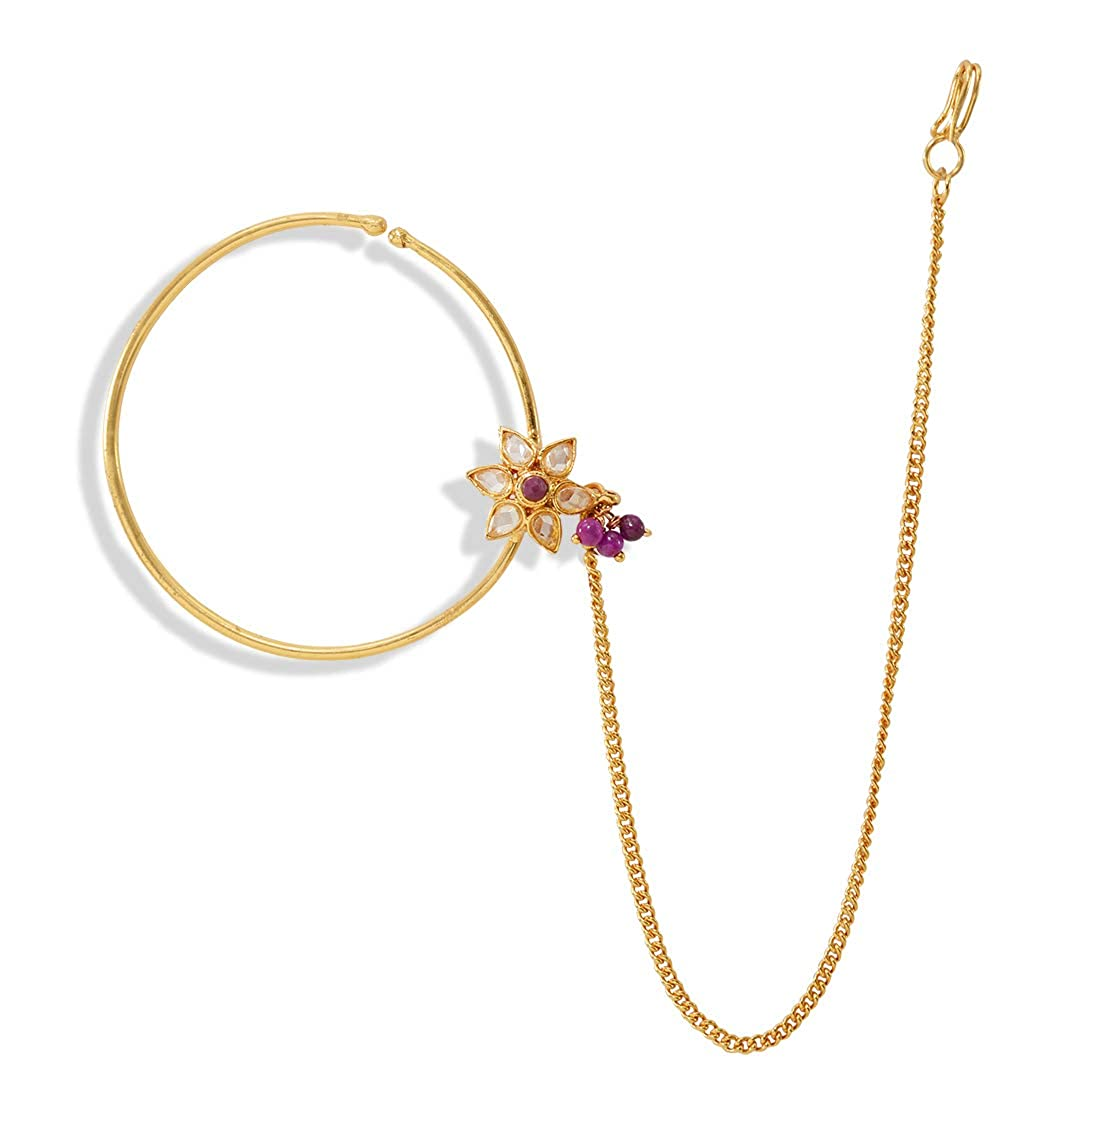 Buy Desire Collection Nath Traditional Nathiya For Women Latest Design Nose Ring Without Piercing Gold Plated Nath Clip On Nose Ring For Women White At Amazon In